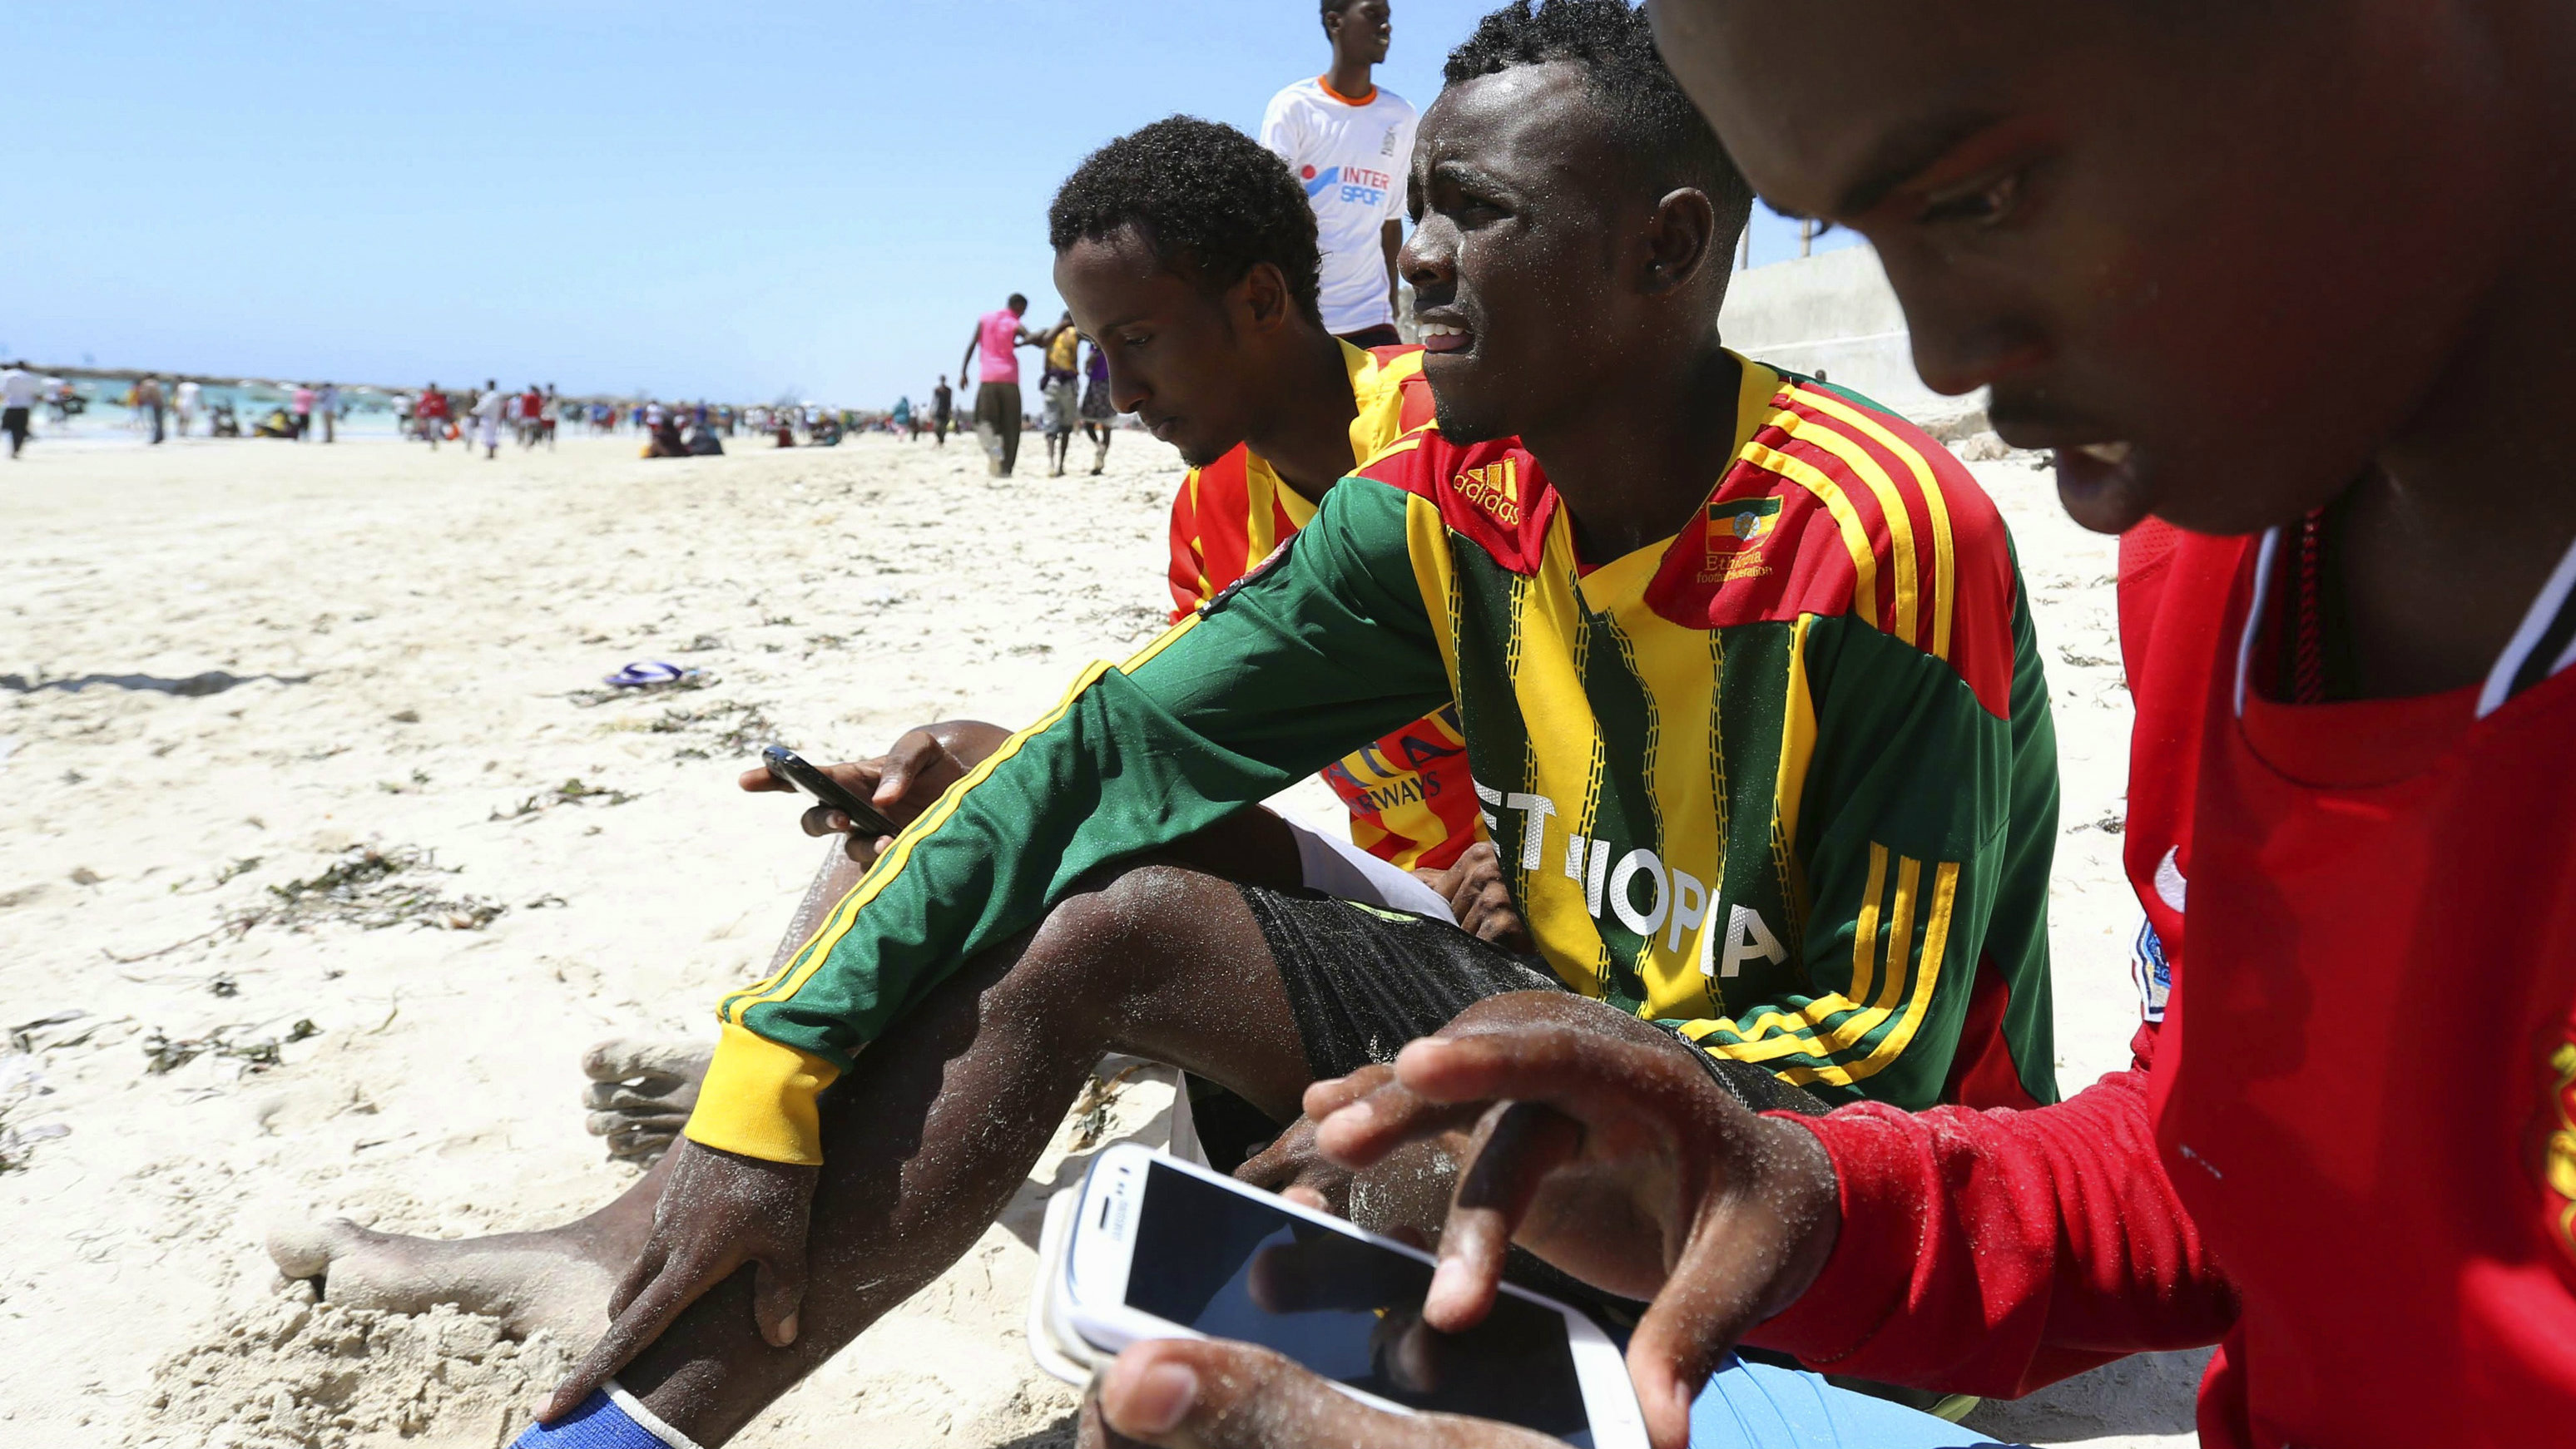 """A Somali man browses the internet on his mobile phone at the beach along the Indian Ocean coastline in Somalia's capital Mogadishu, January 10, 2014. Somali rebel group al Shabaab has banned the use of the Internet in the Horn of Africa country, giving telecom operators 15 days to comply with the order, the militants said. """"Any company or person who fails to comply with the rule will be dealt with according to the Islamic sharia,"""" the group said in a statement posted on the Internet. REUTERS/Feisal Omar (SOMALIA - Tags: CIVIL UNREST POLITICS ENVIRONMENT SOCIETY SCIENCE TECHNOLOGY BUSINESS TELECOMS)"""